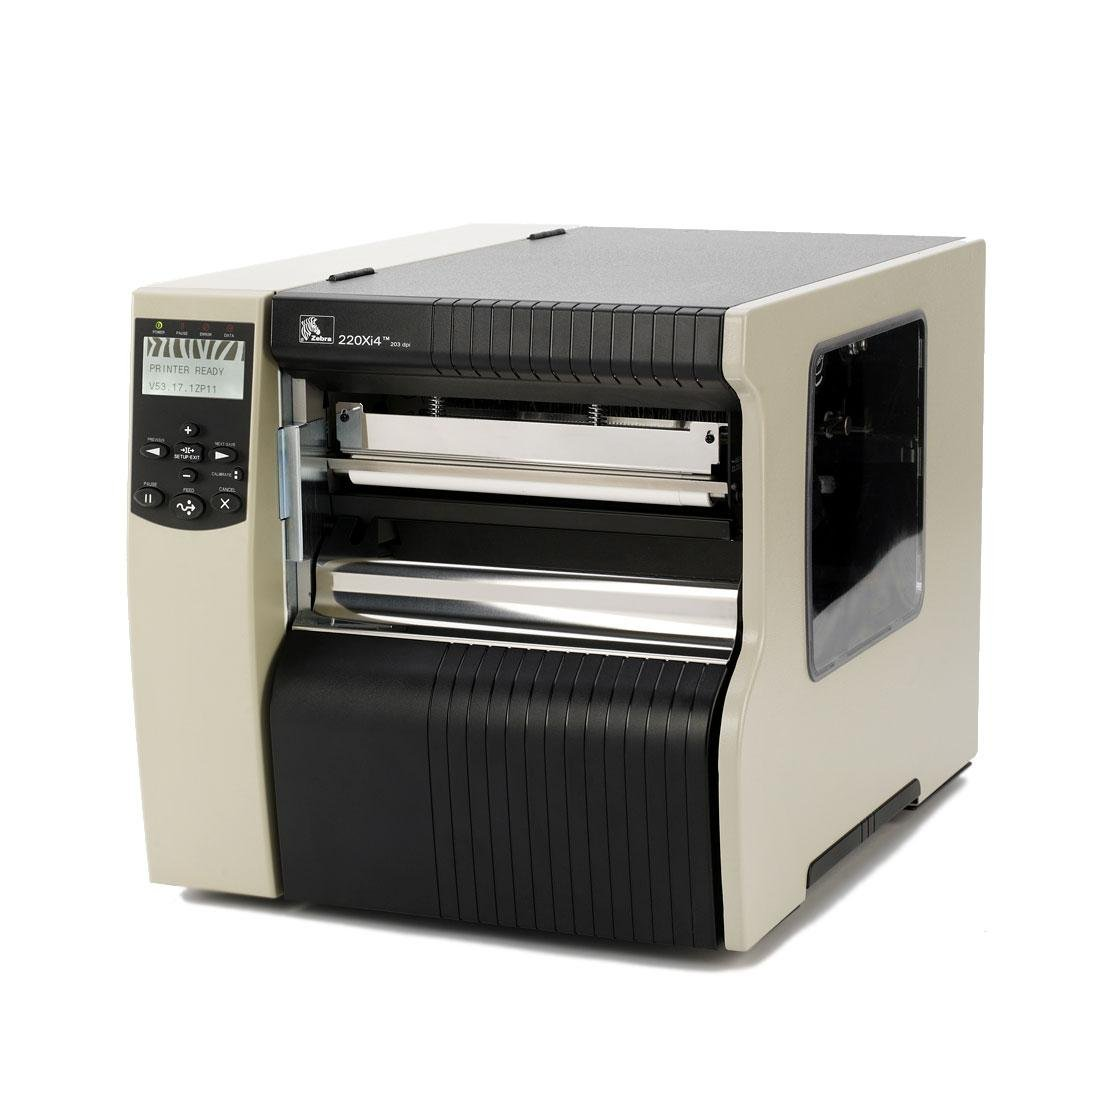 "Zebra Technologies 223-801-00200 Series 220XI4 8"" DT/TT Tabletop Printer, 300 dpi Resolution, RS-232 Serial/Parallel/USB 2.0/Internal Zebra Net 10/100, 16 MB with ZPL II/XML, Rewind with Peel"